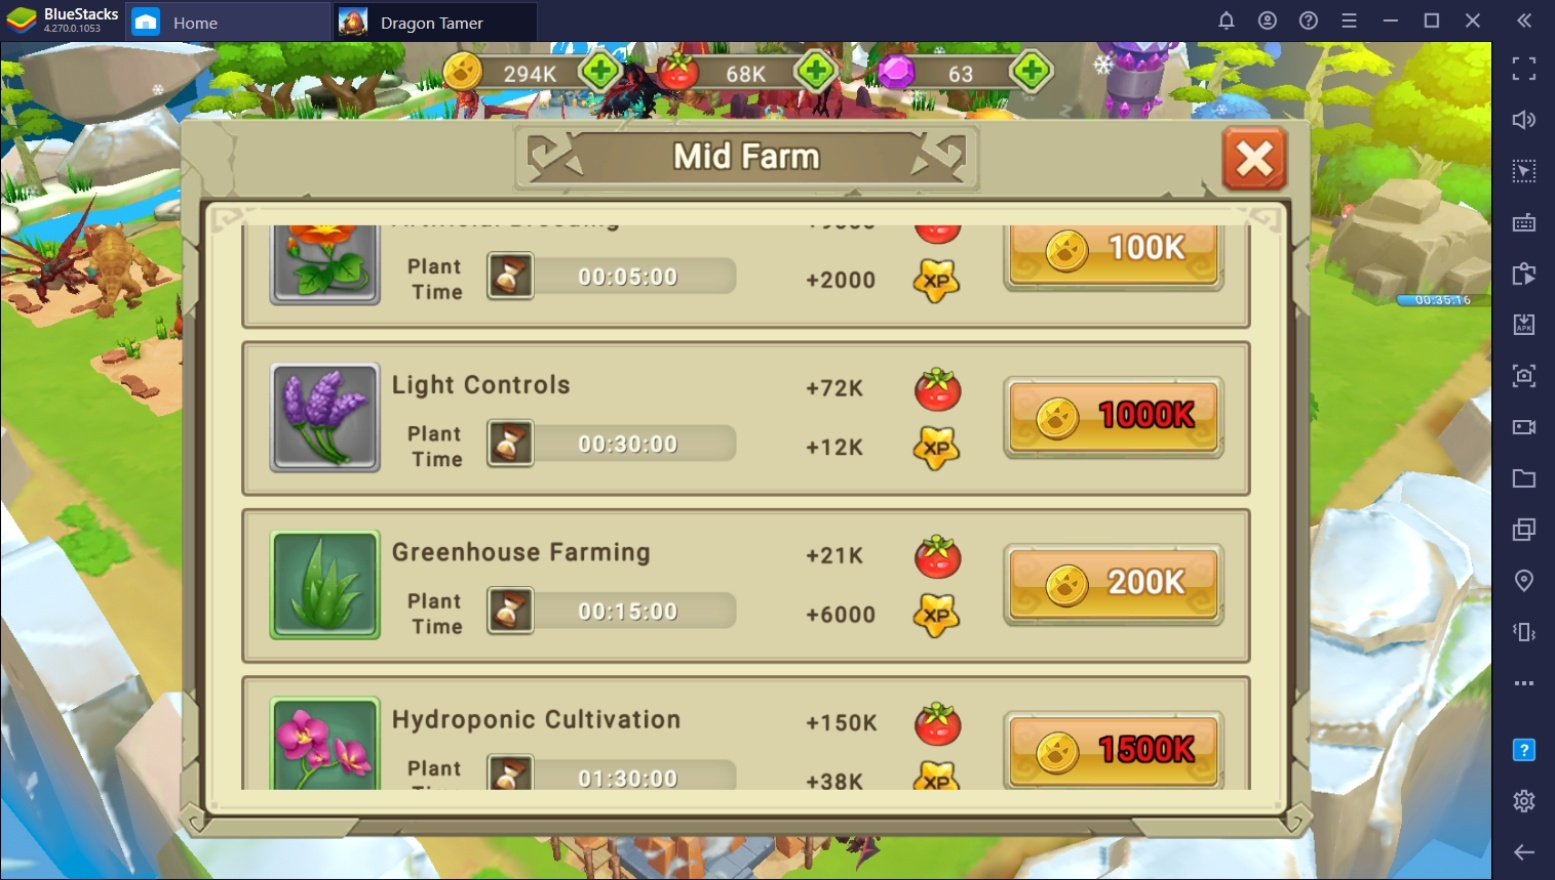 Dragon Tamer Early Resource Guide: Gold & Food